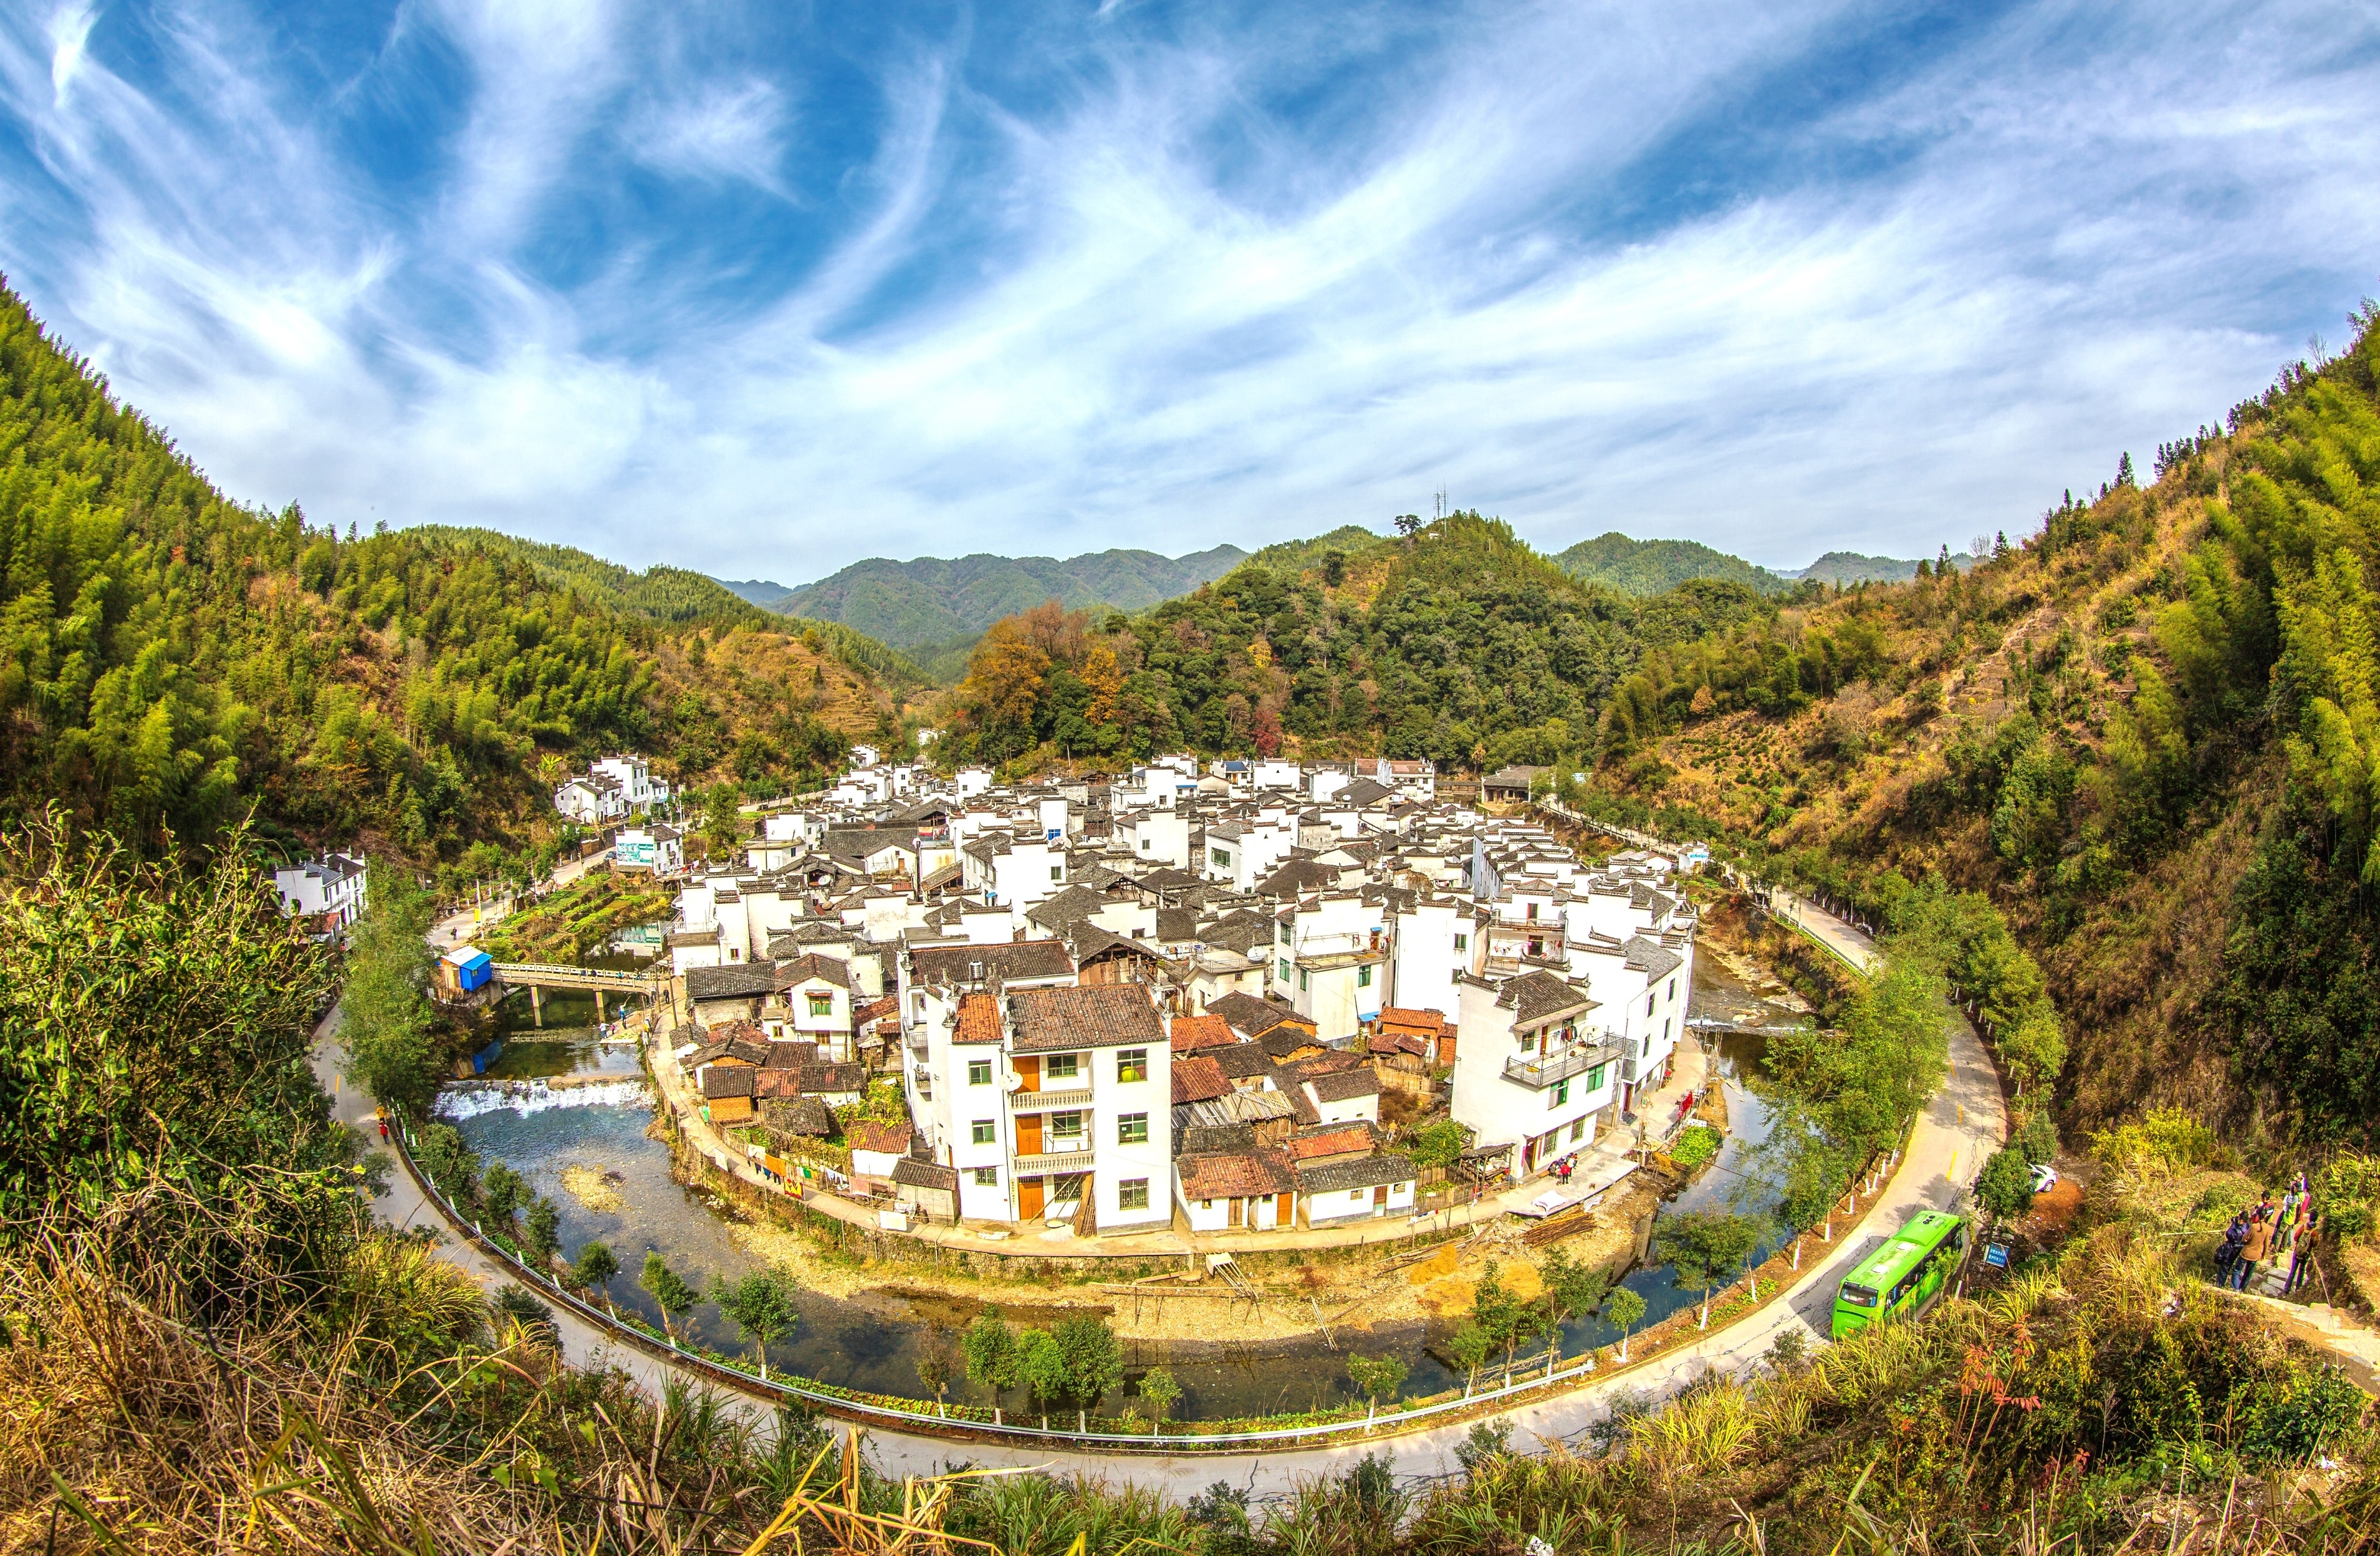 The White Walled-Black Roofed Huipai Village with Horse-Head Walls: You Must Come to Wuyuan to Appreciate It Properly.